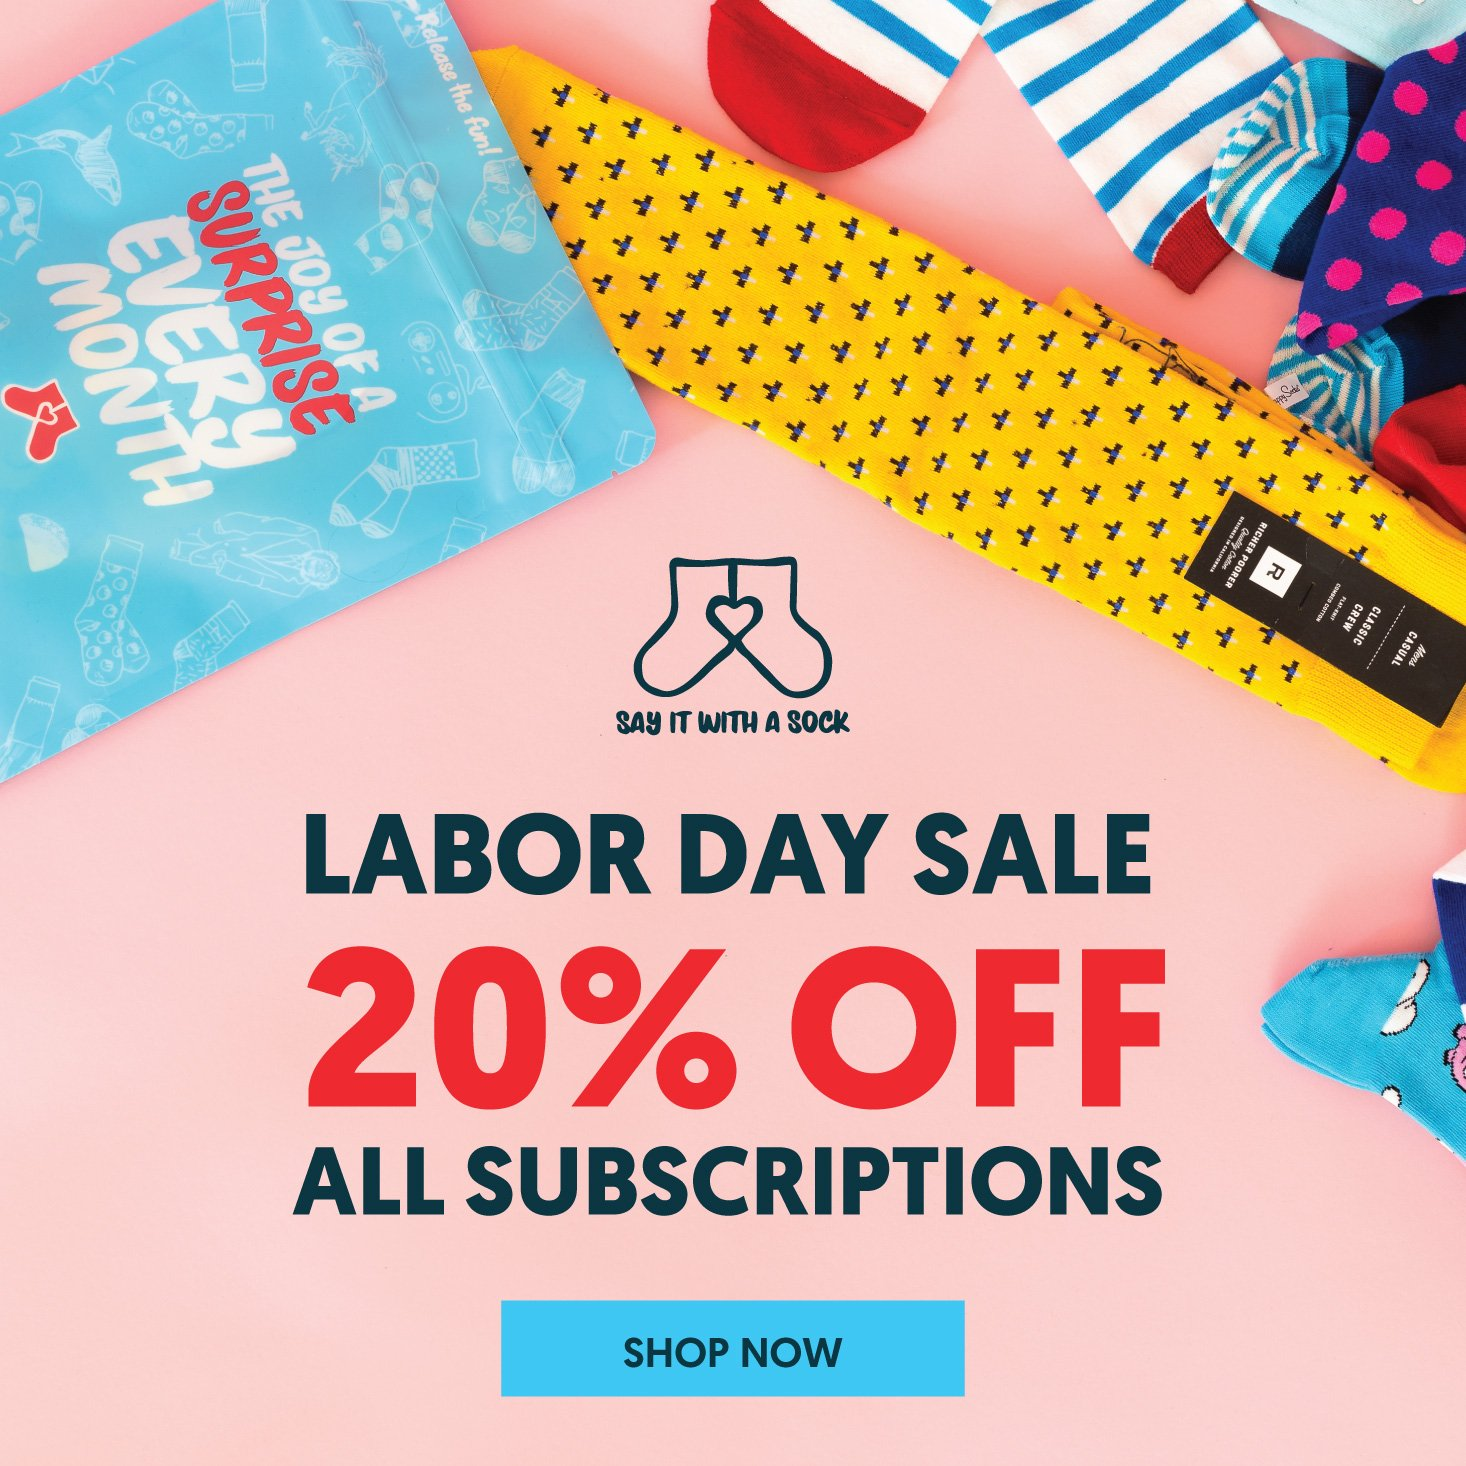 Say It With A Sock Labor Day Coupon – 20% Off Subscriptions!